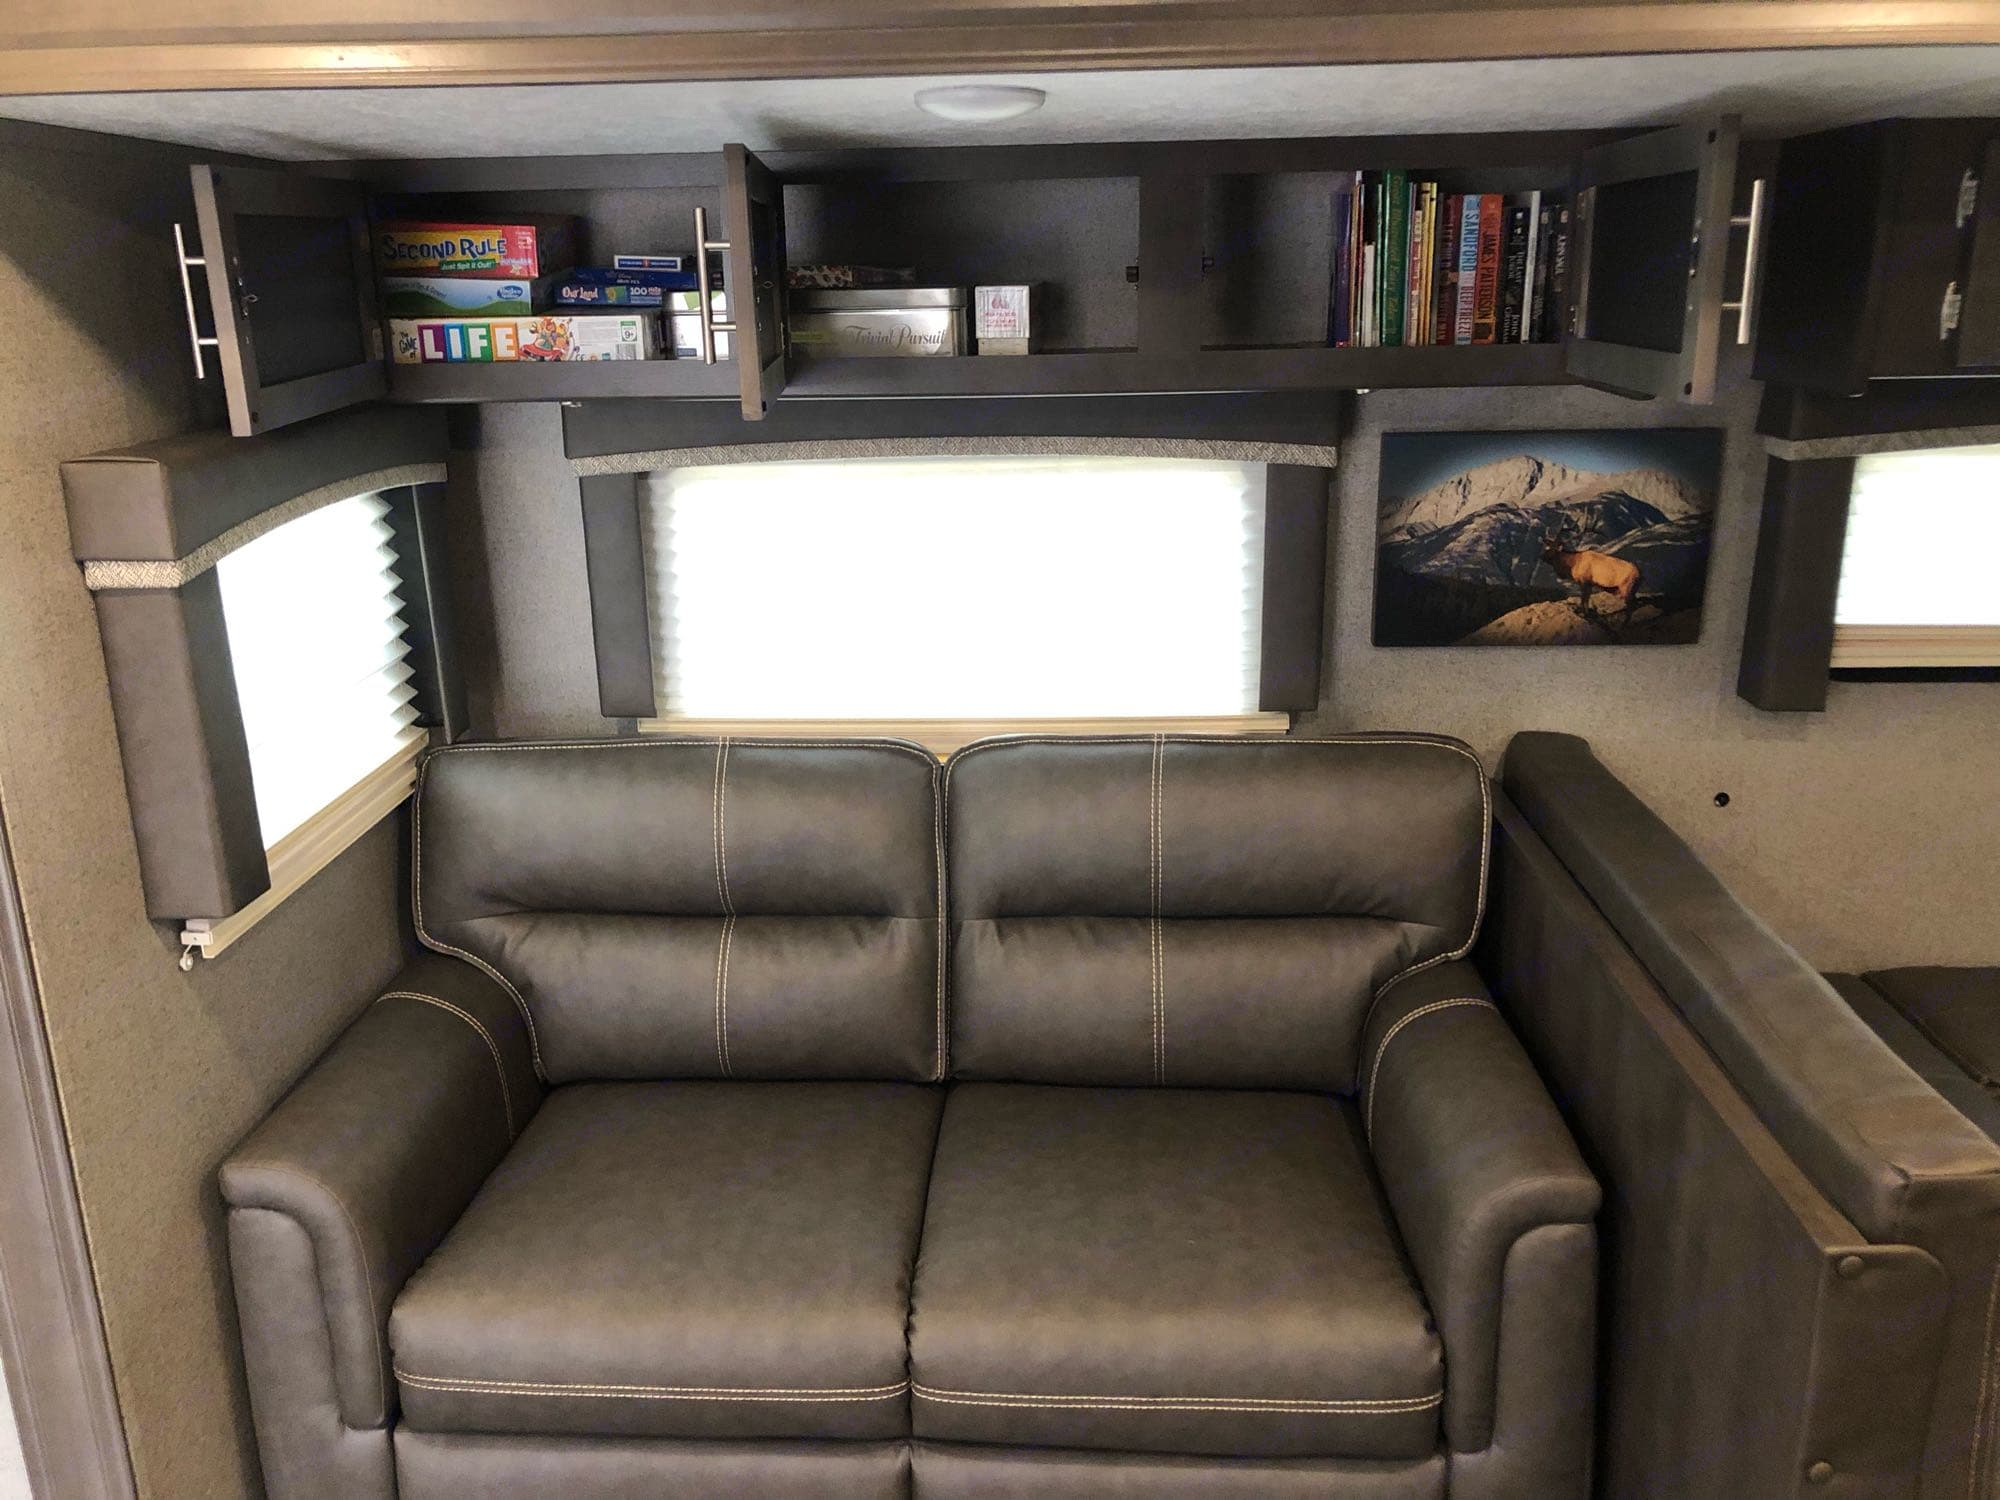 games, books and movies already on board. Forest River Rockwood Ultra Lite 2019